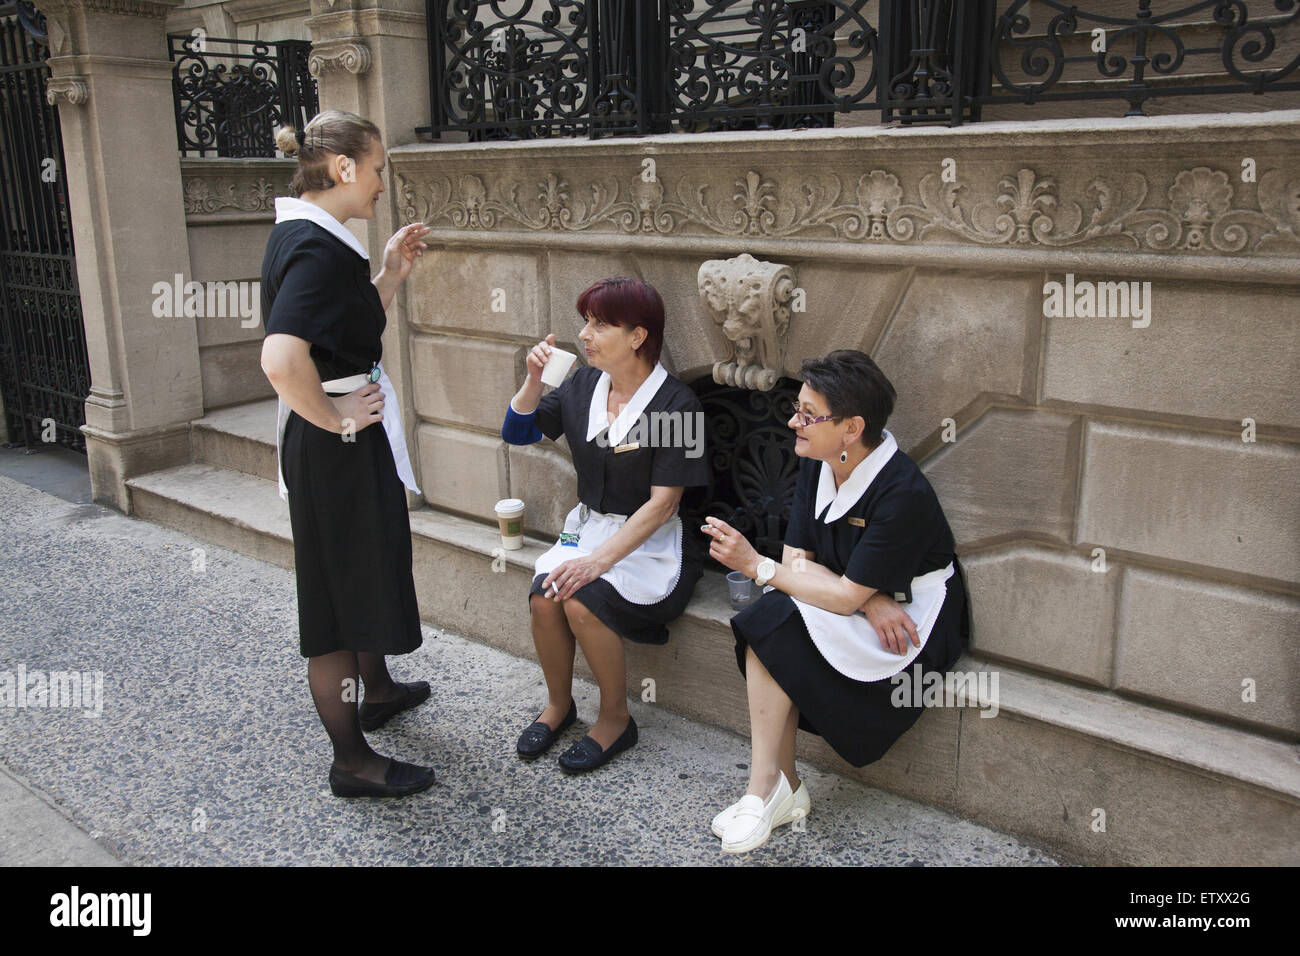 Female workers in their uniforms take a smoking break from work at a  hotel off Madison Ave., NYC - Stock Image